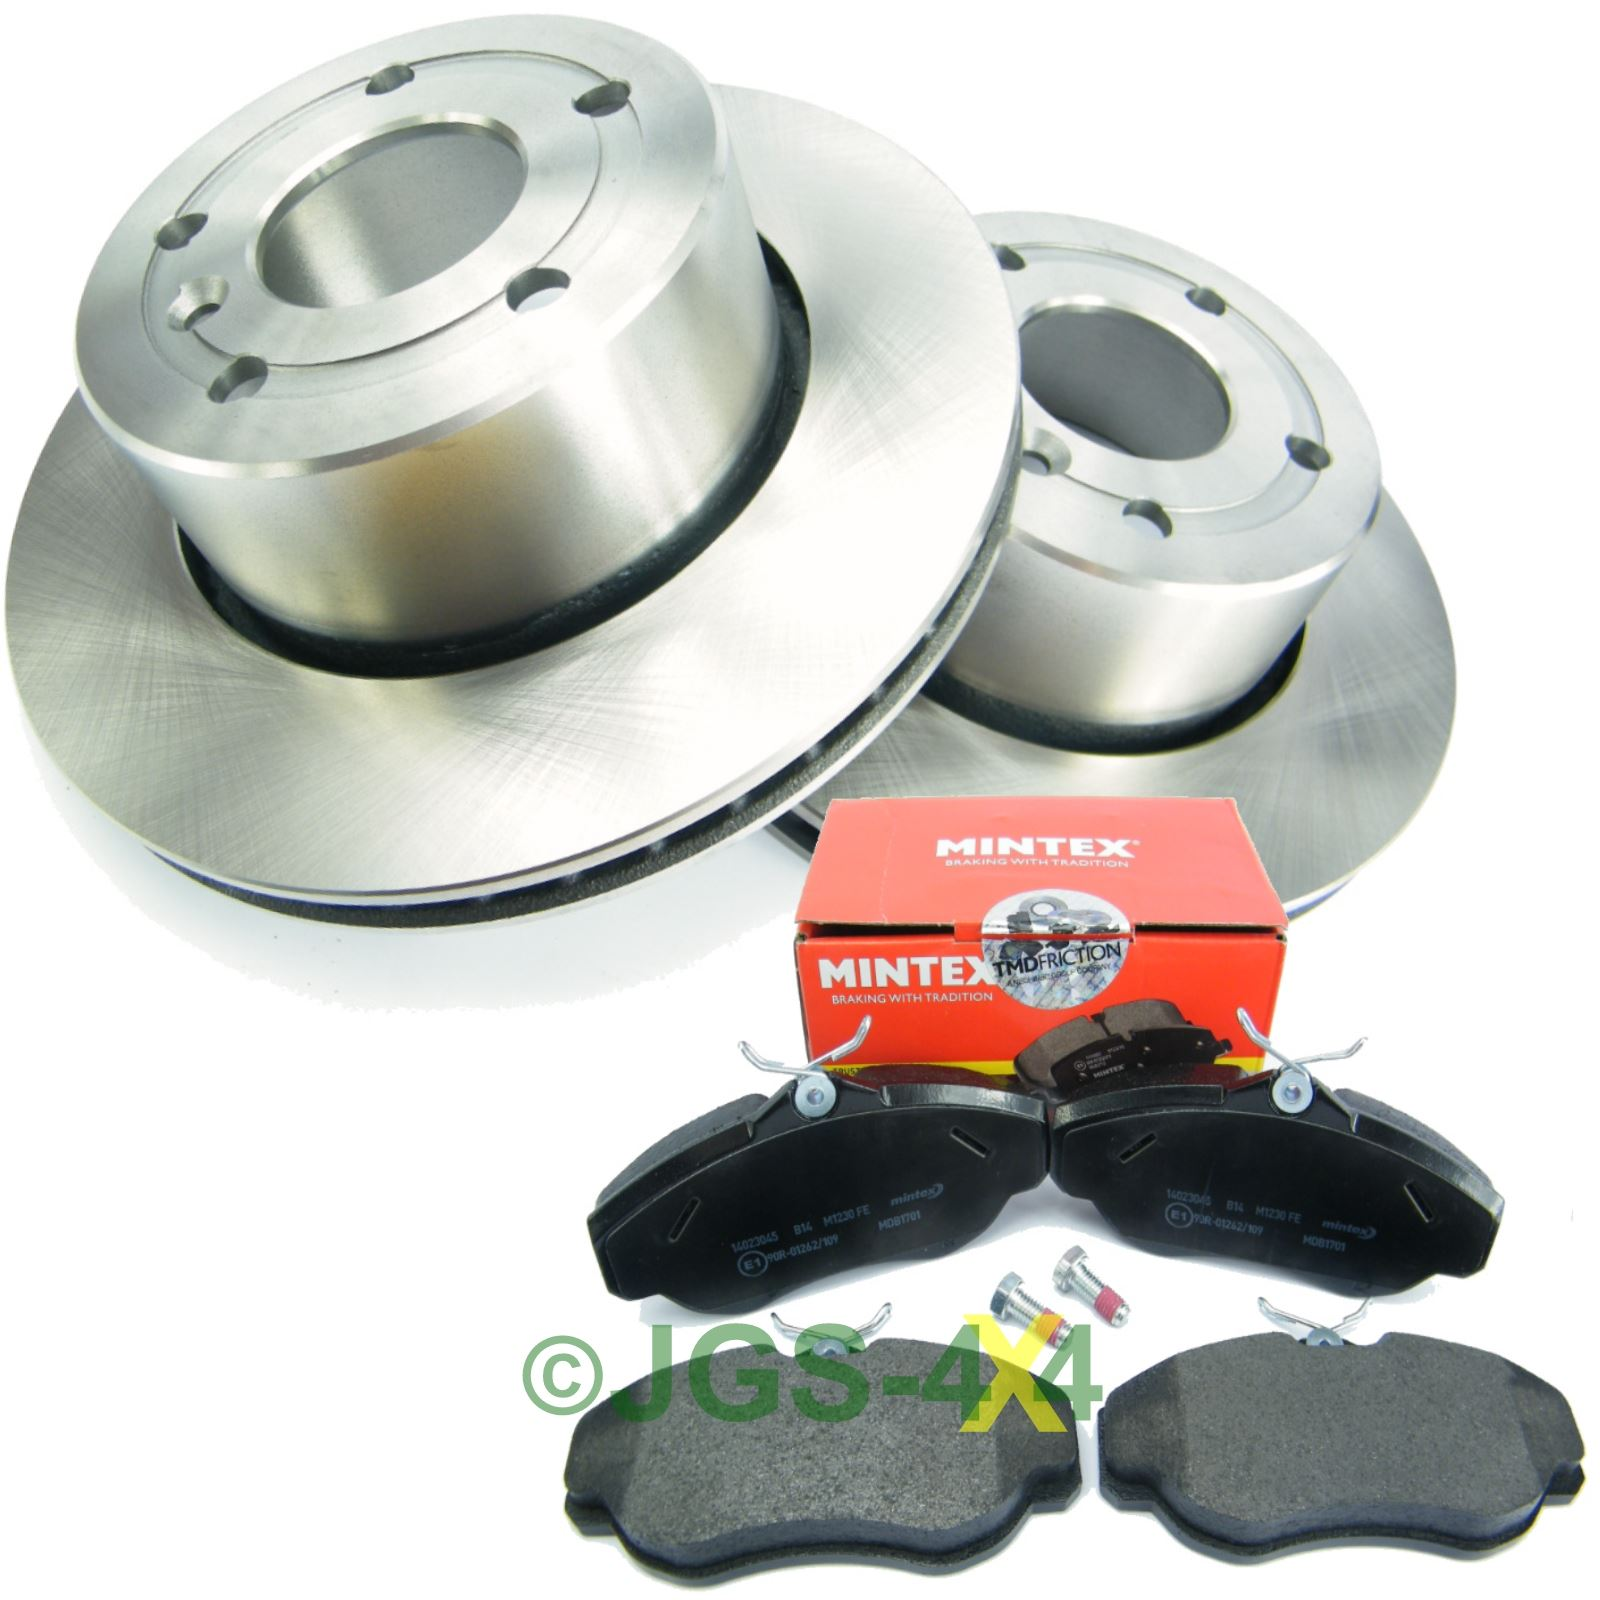 Land Rover Discovery 2 Range Rover P38 Rear Lhs N S: Land Rover Discovery 2 Front Brake Disc+ MINTEX Brake Pad